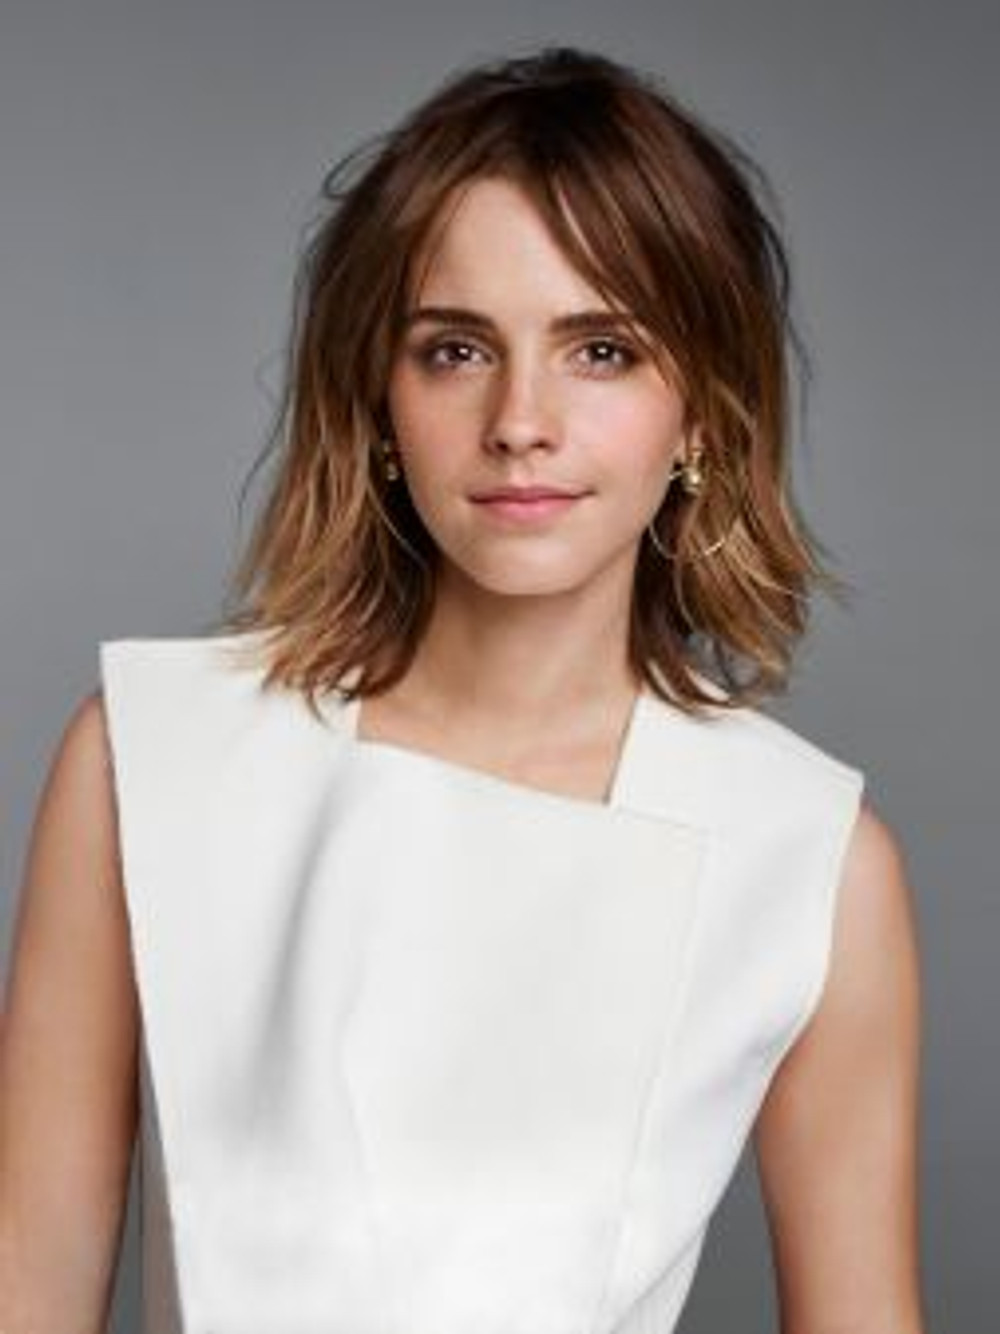 emma-watson-photoshoot-february-2017-3.jpg